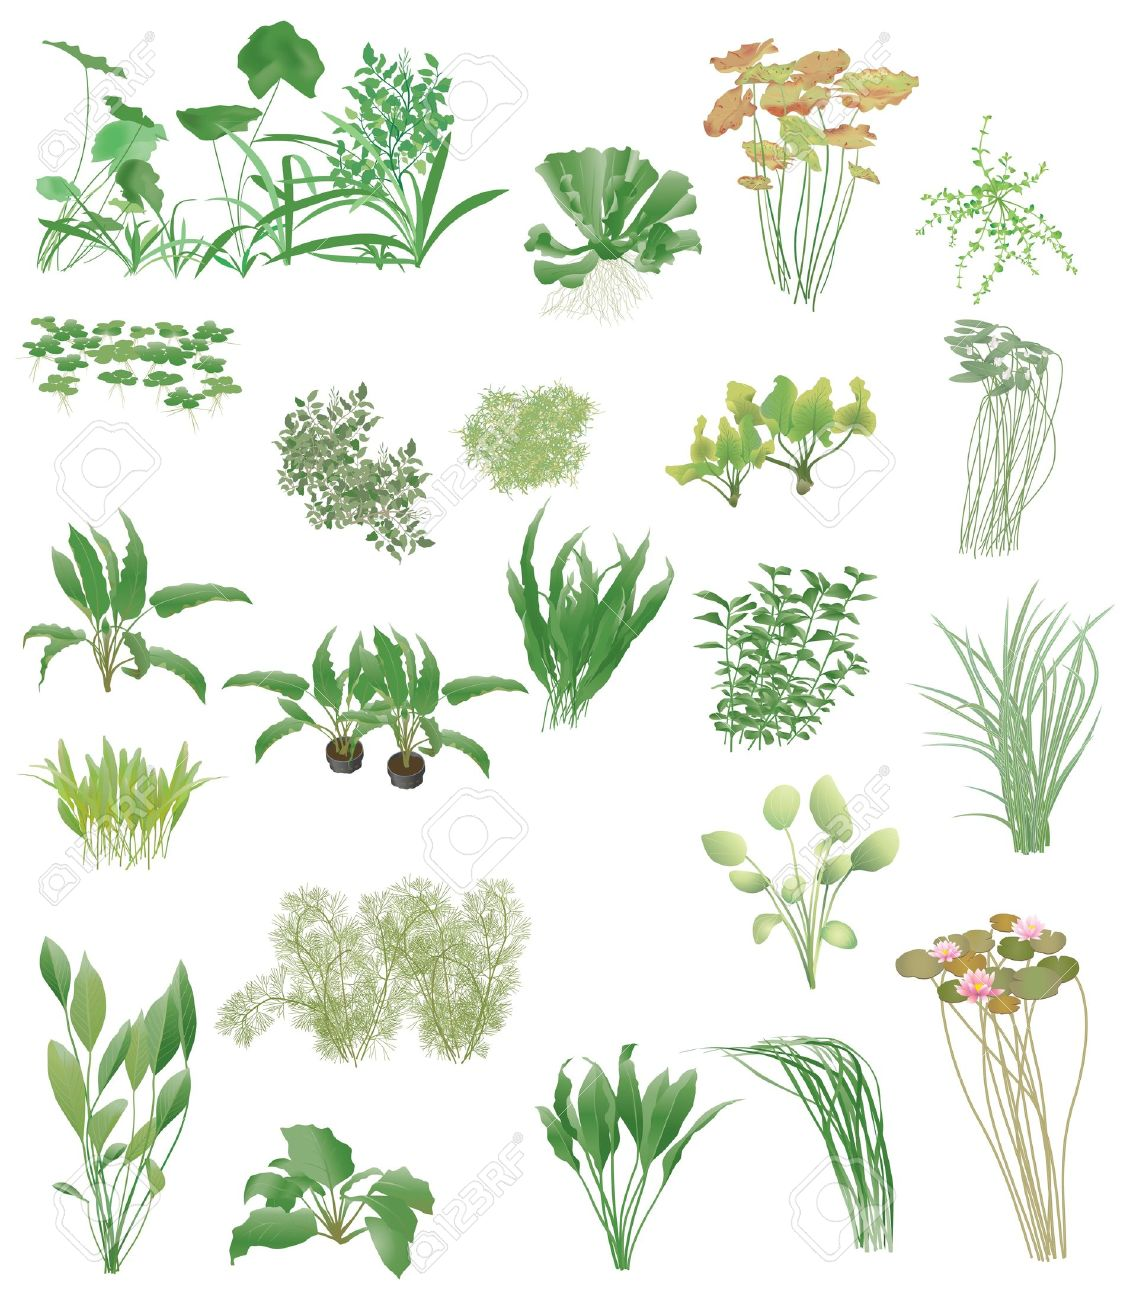 Pond Plants Clipart 20 Free Cliparts